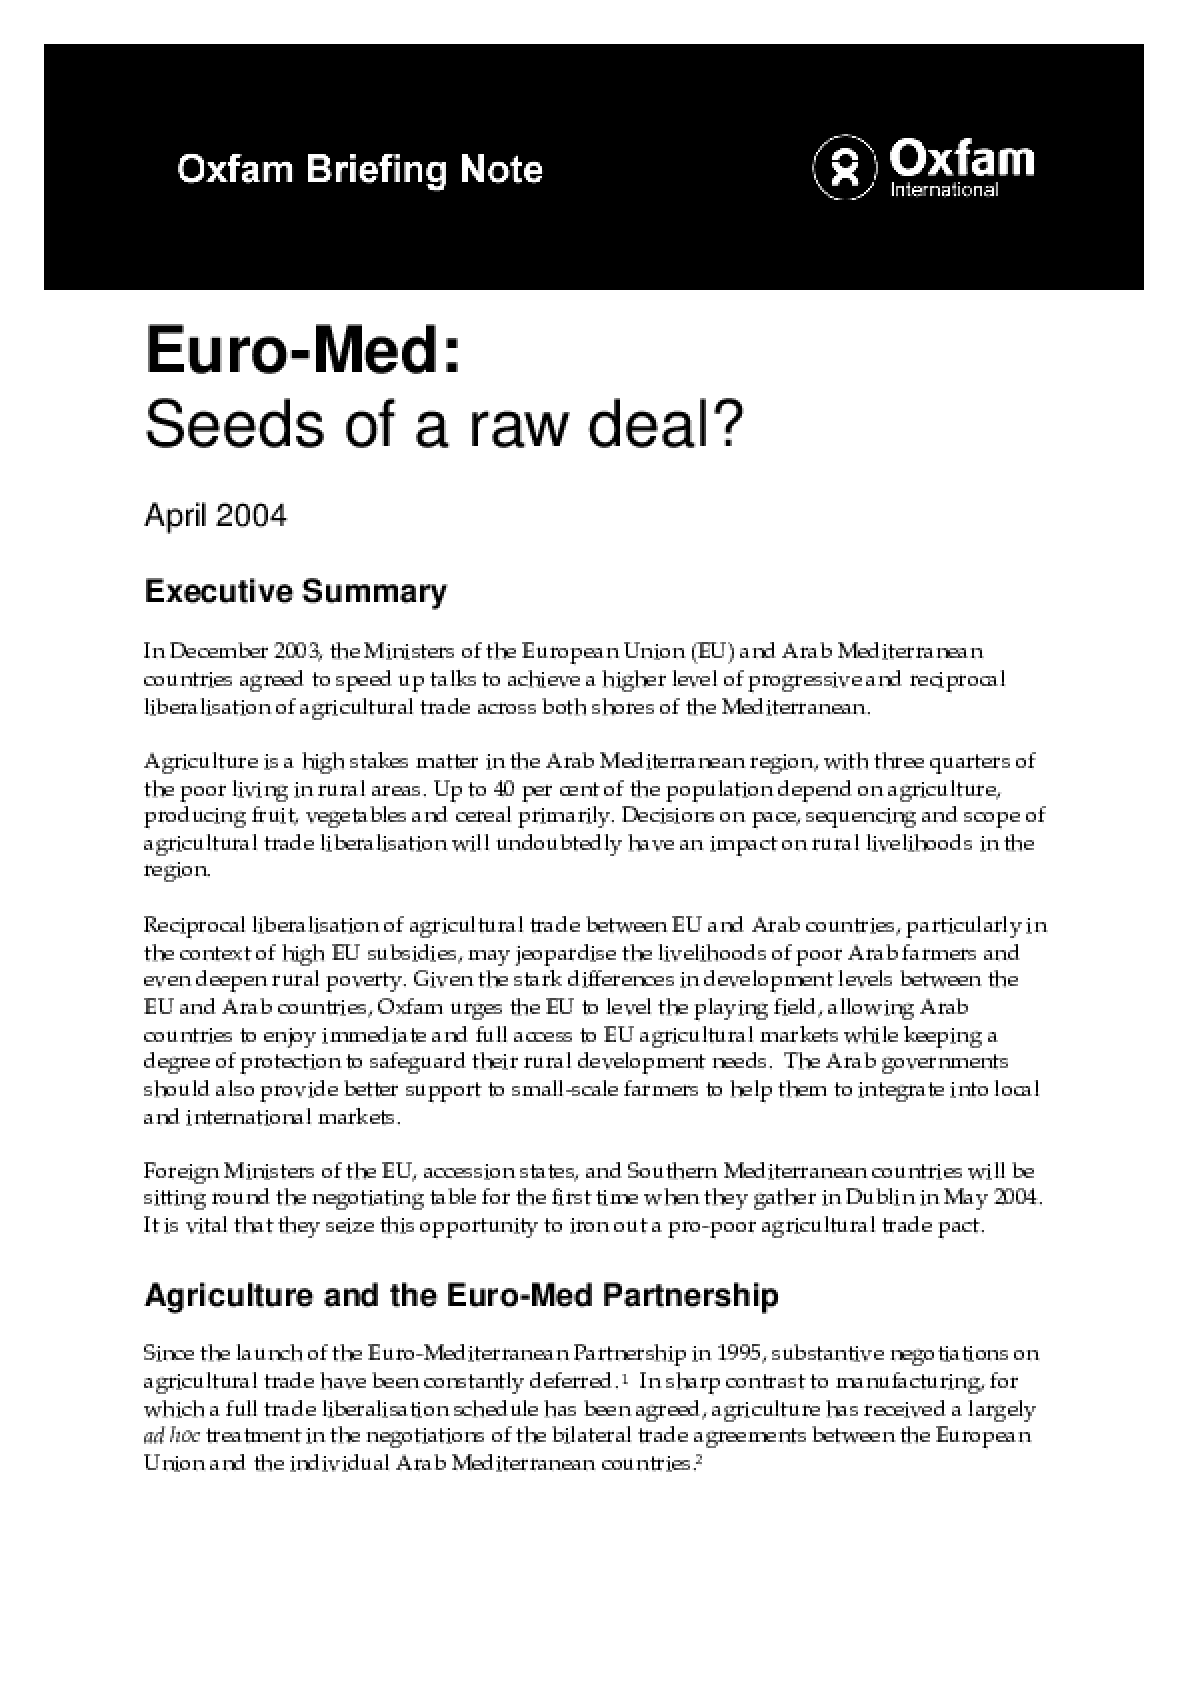 EuroMed: Seeds of a raw deal